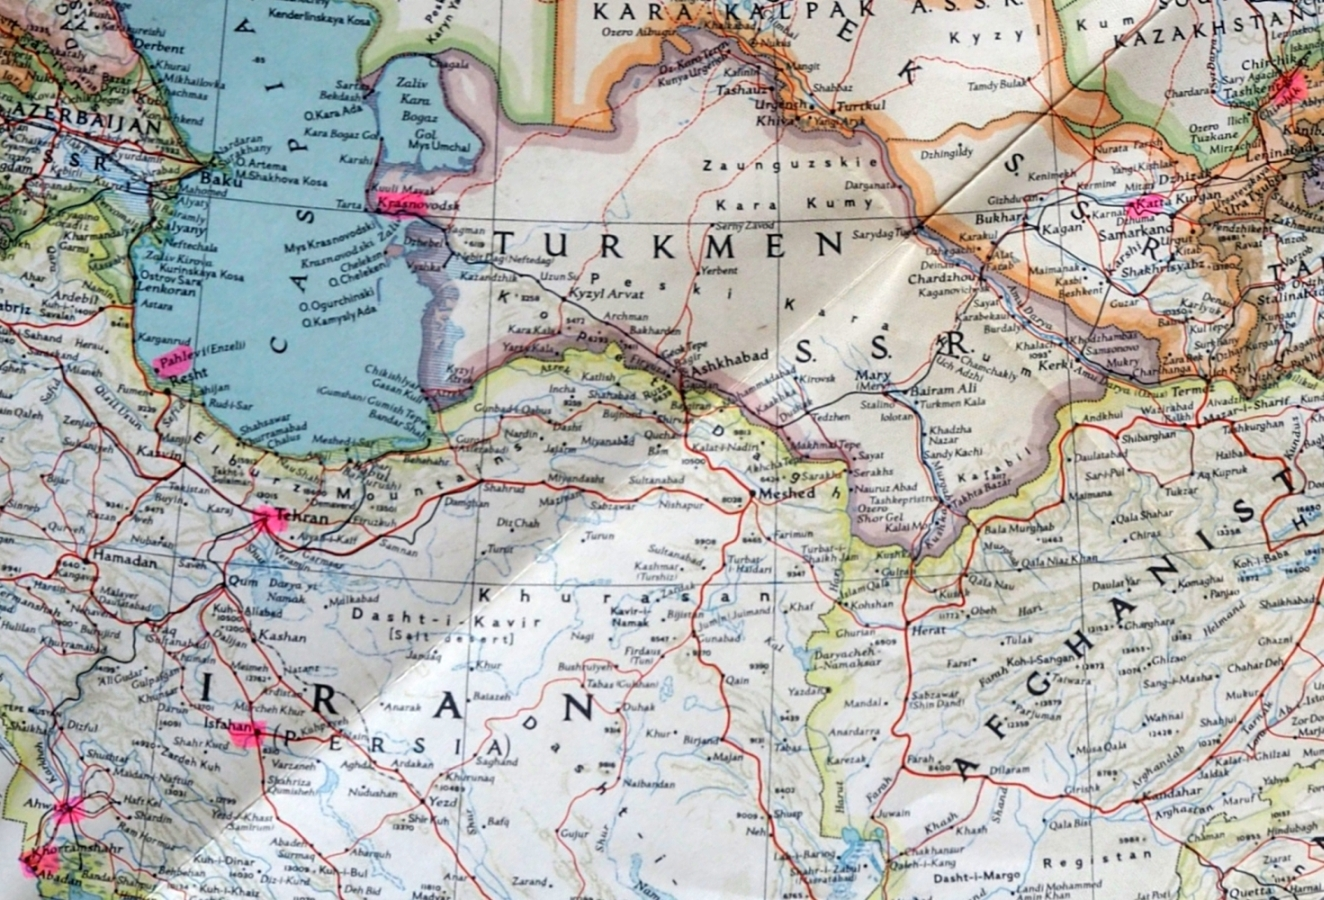 A section of the National  Geographic's 1949 map of the USSR showing towns on his route west out of the USSR.